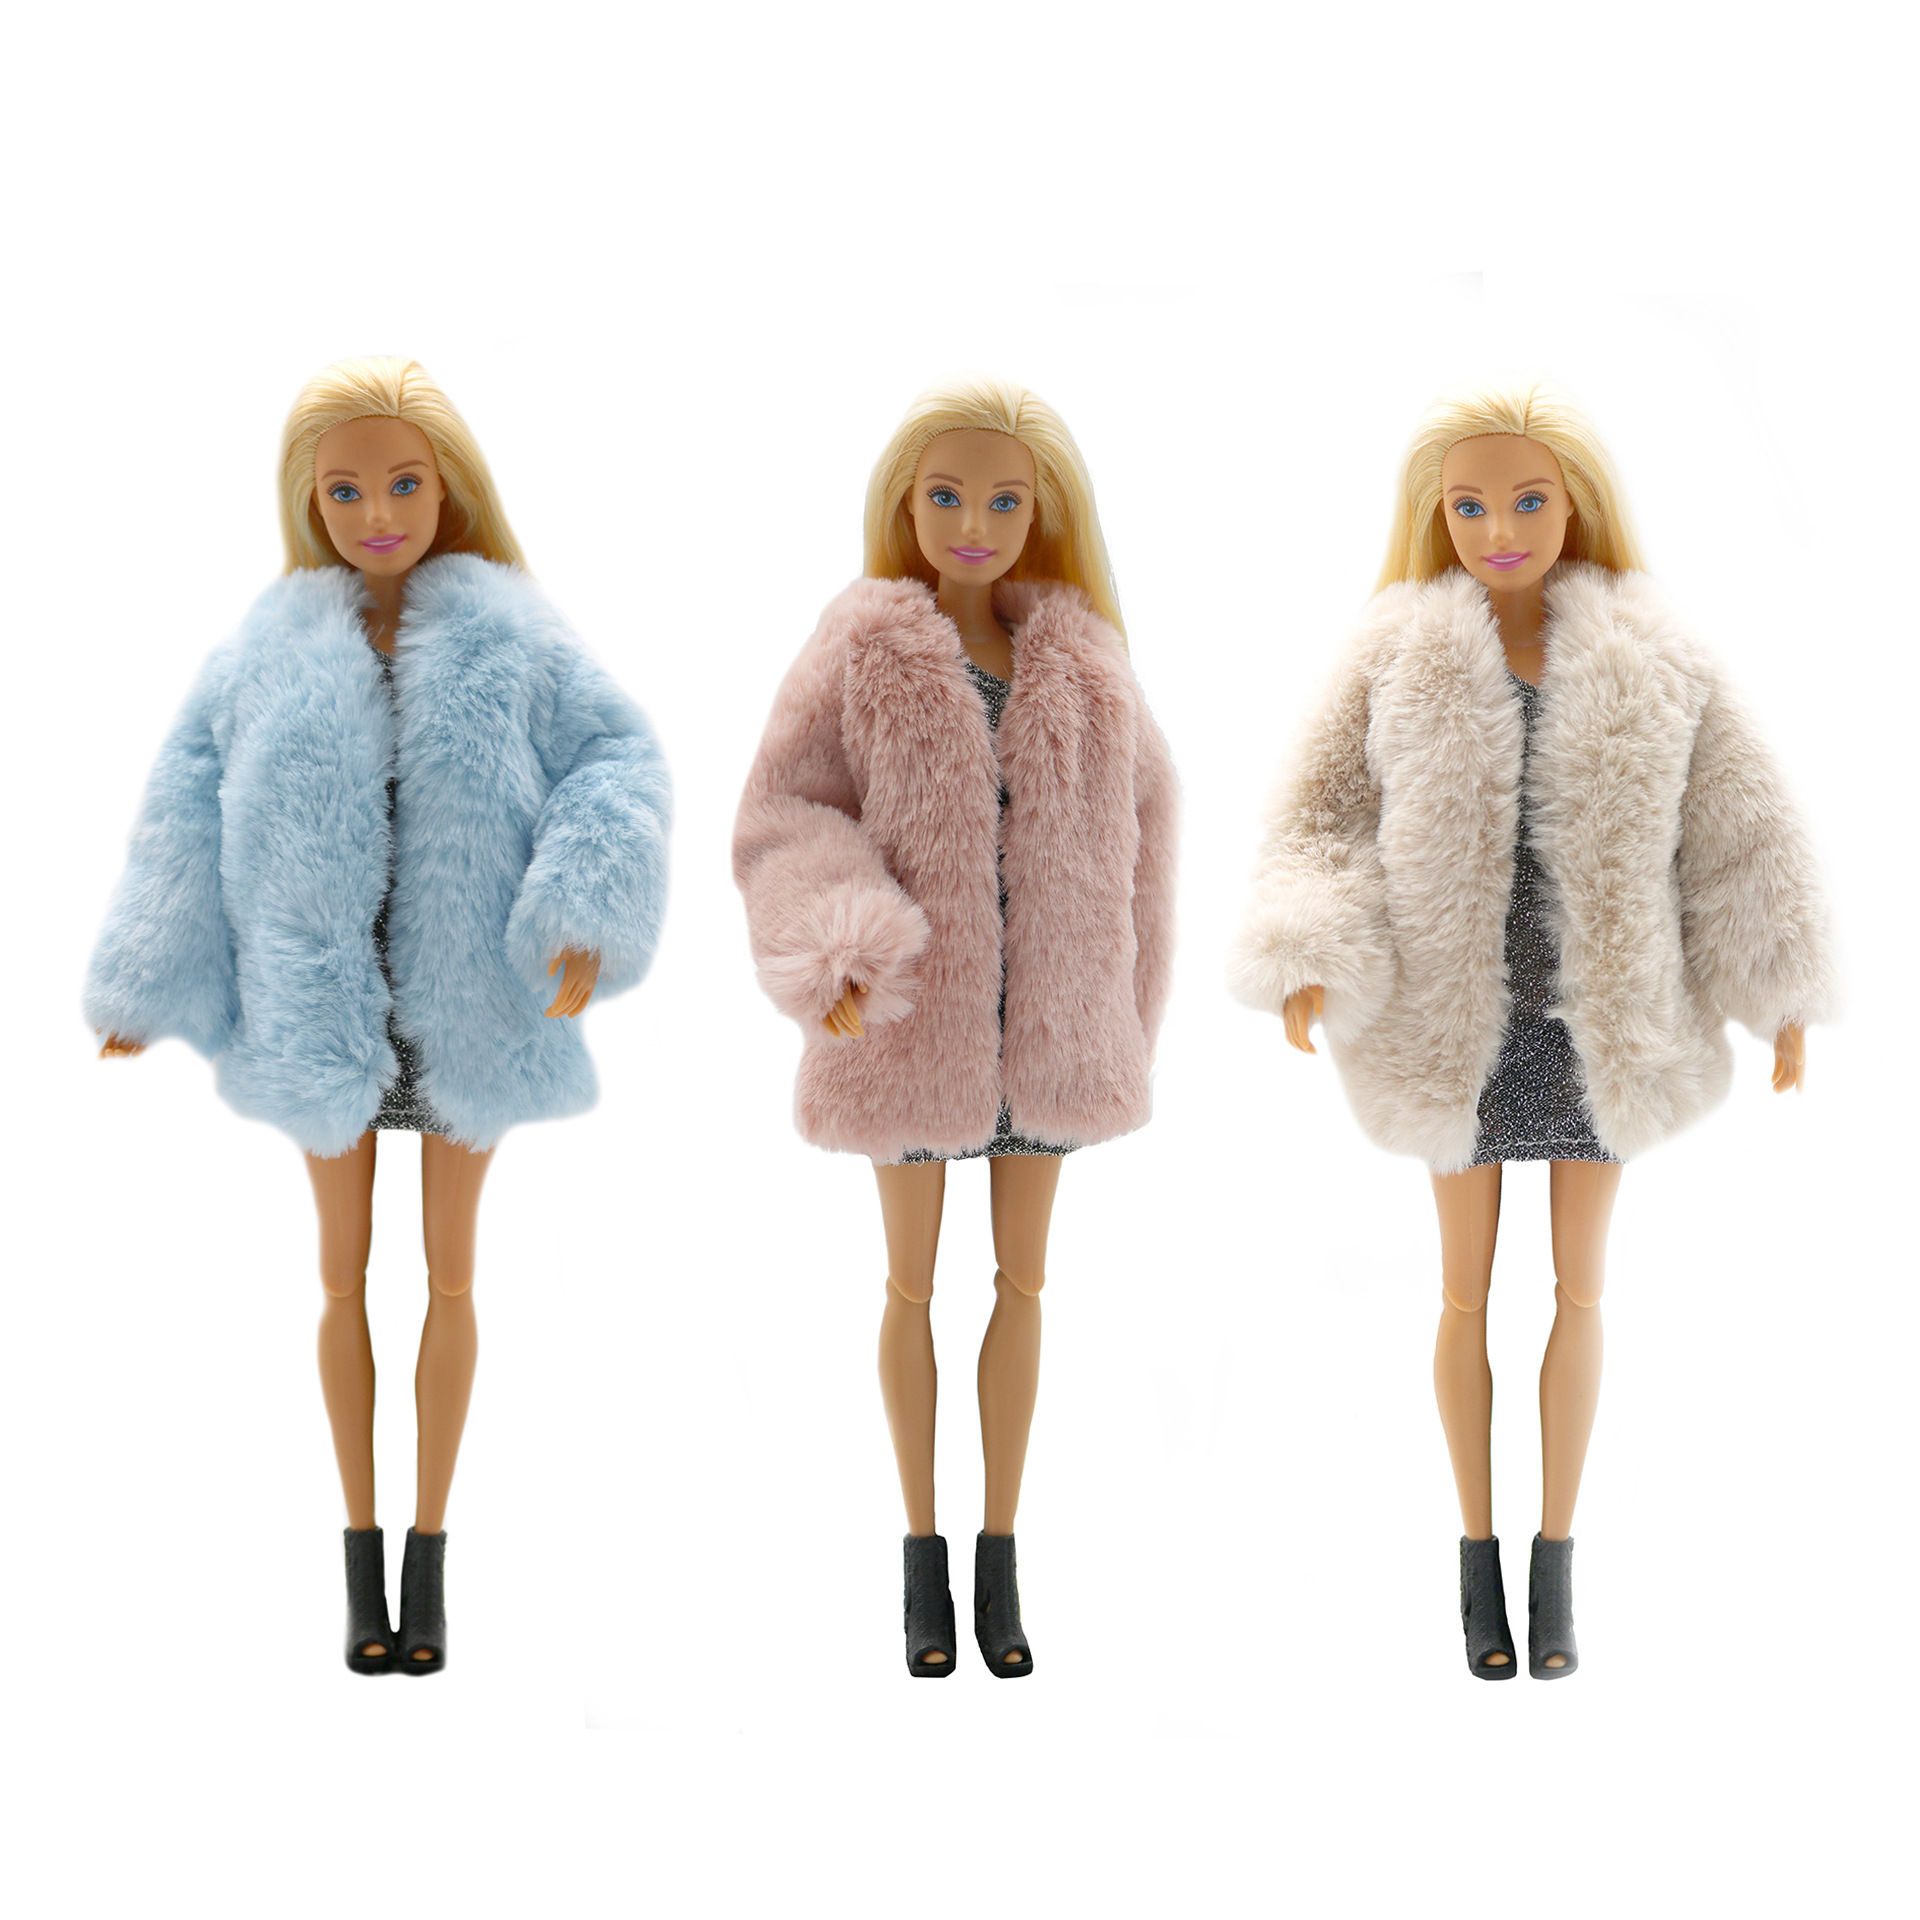 Handmade Fashion Winter faux-fur Outfit /& Short Blue Skirt For 11.5 inches Doll